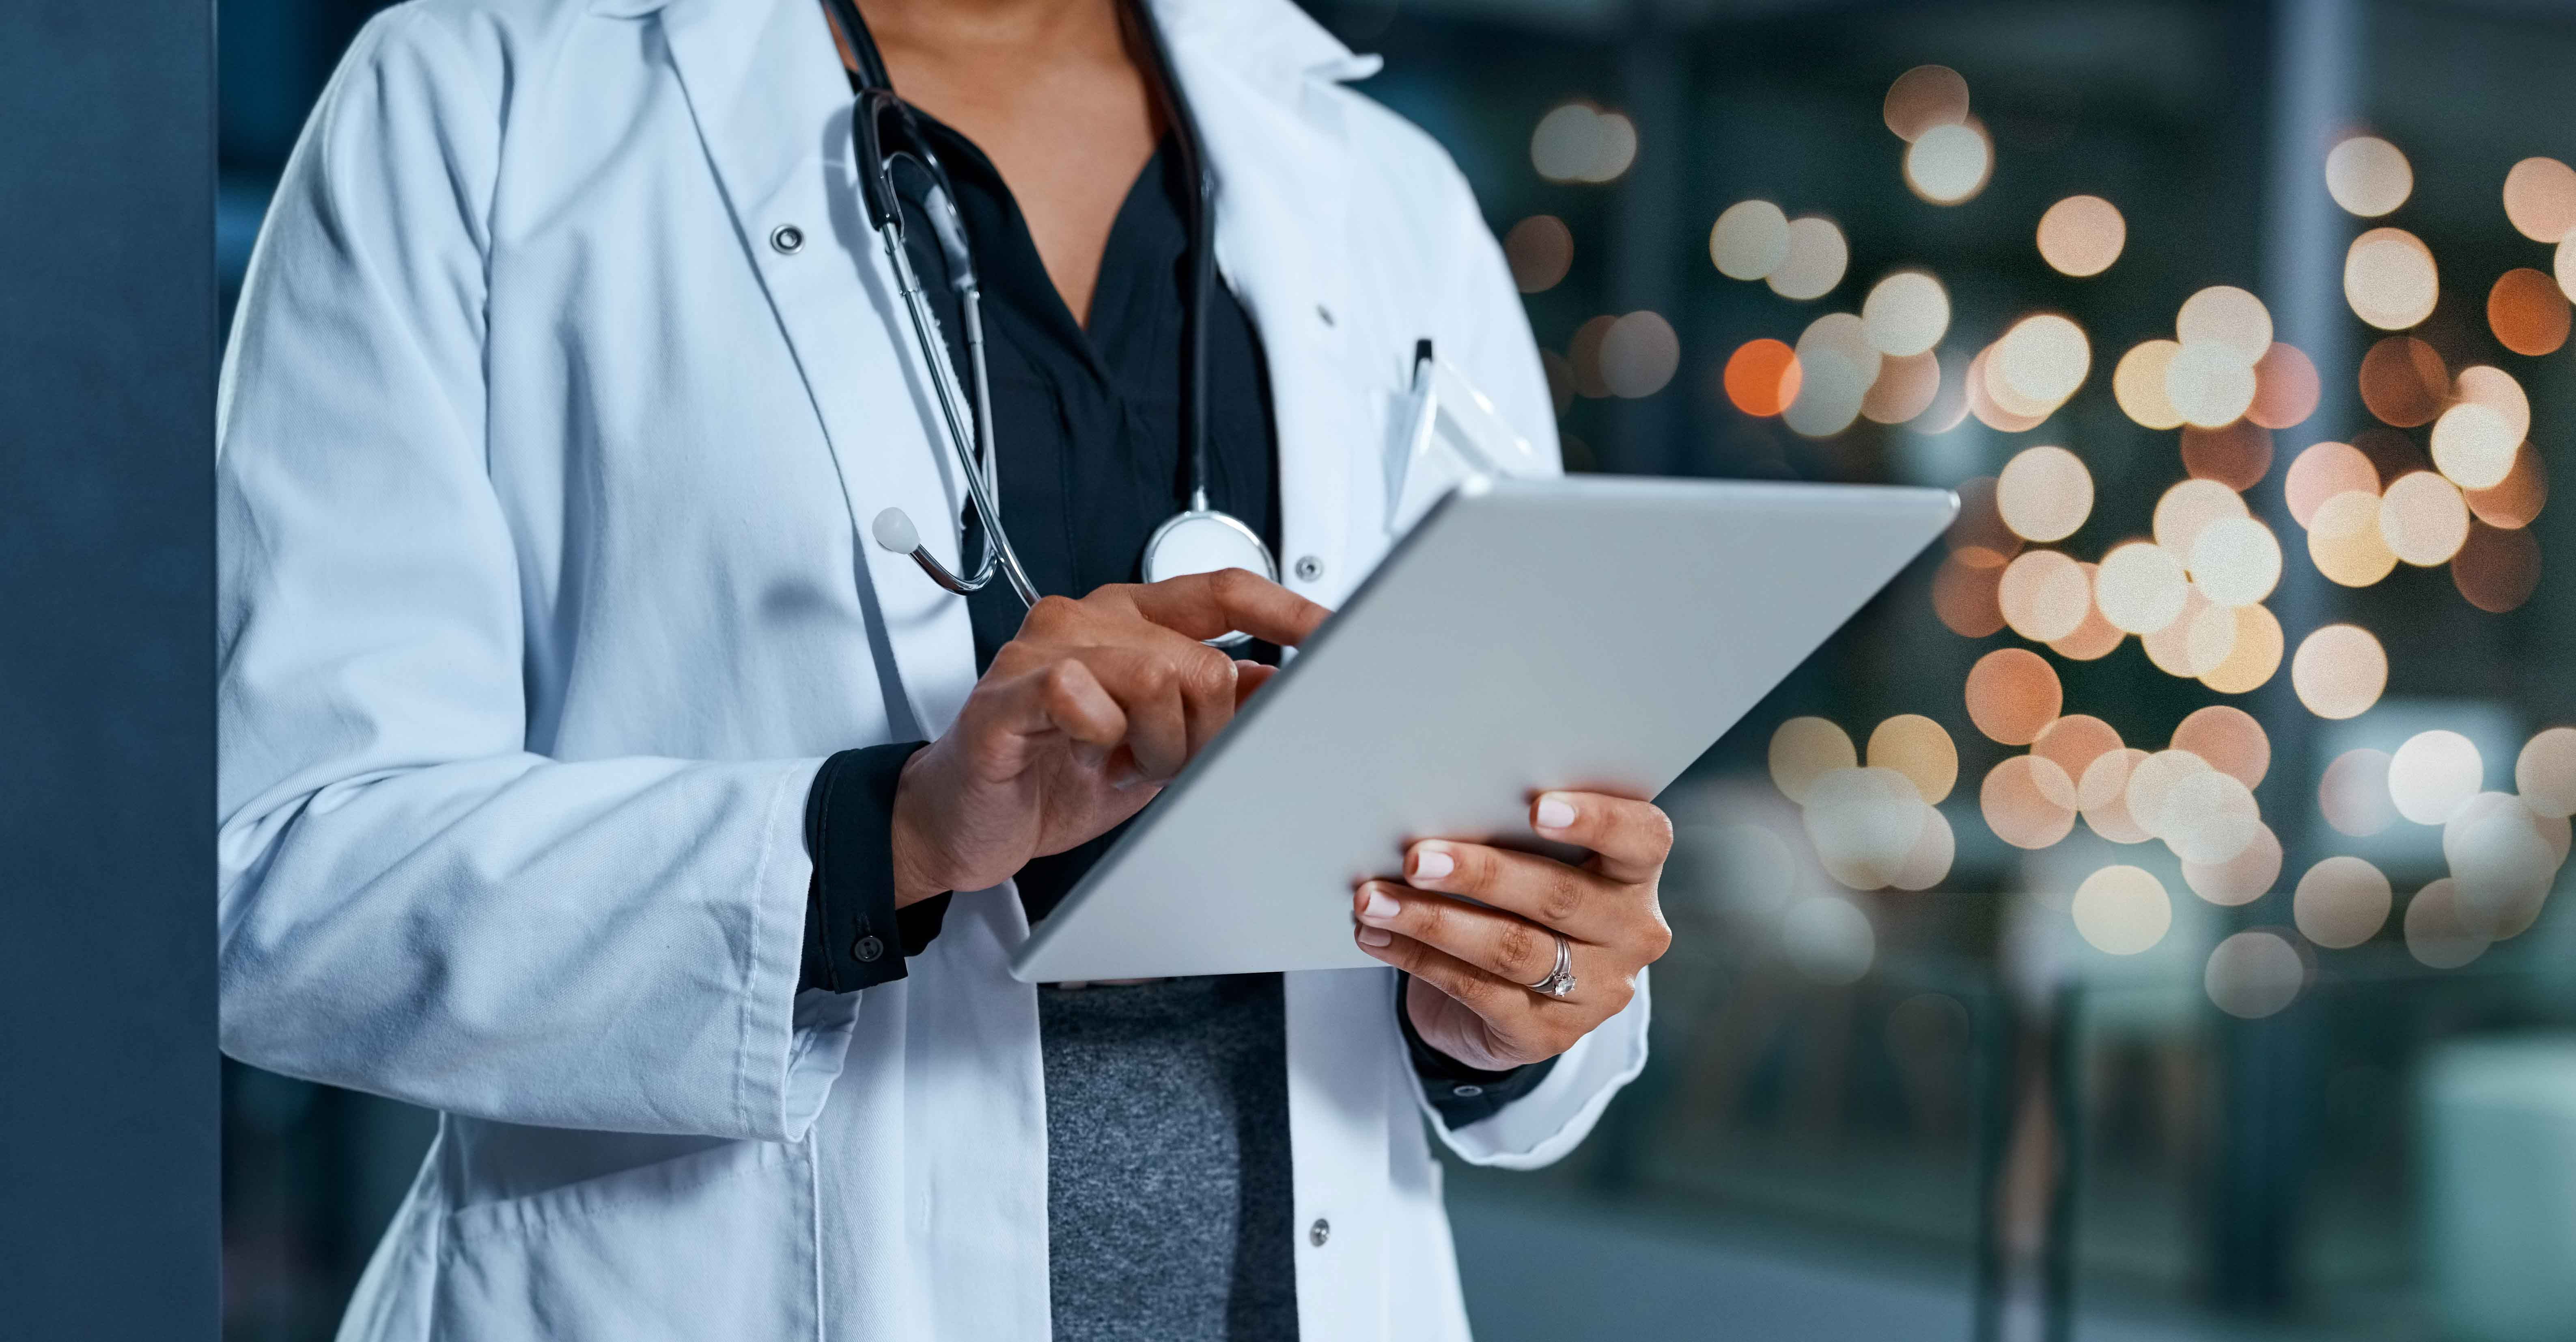 A doctor uses a wound care app on a tablet in the hospital